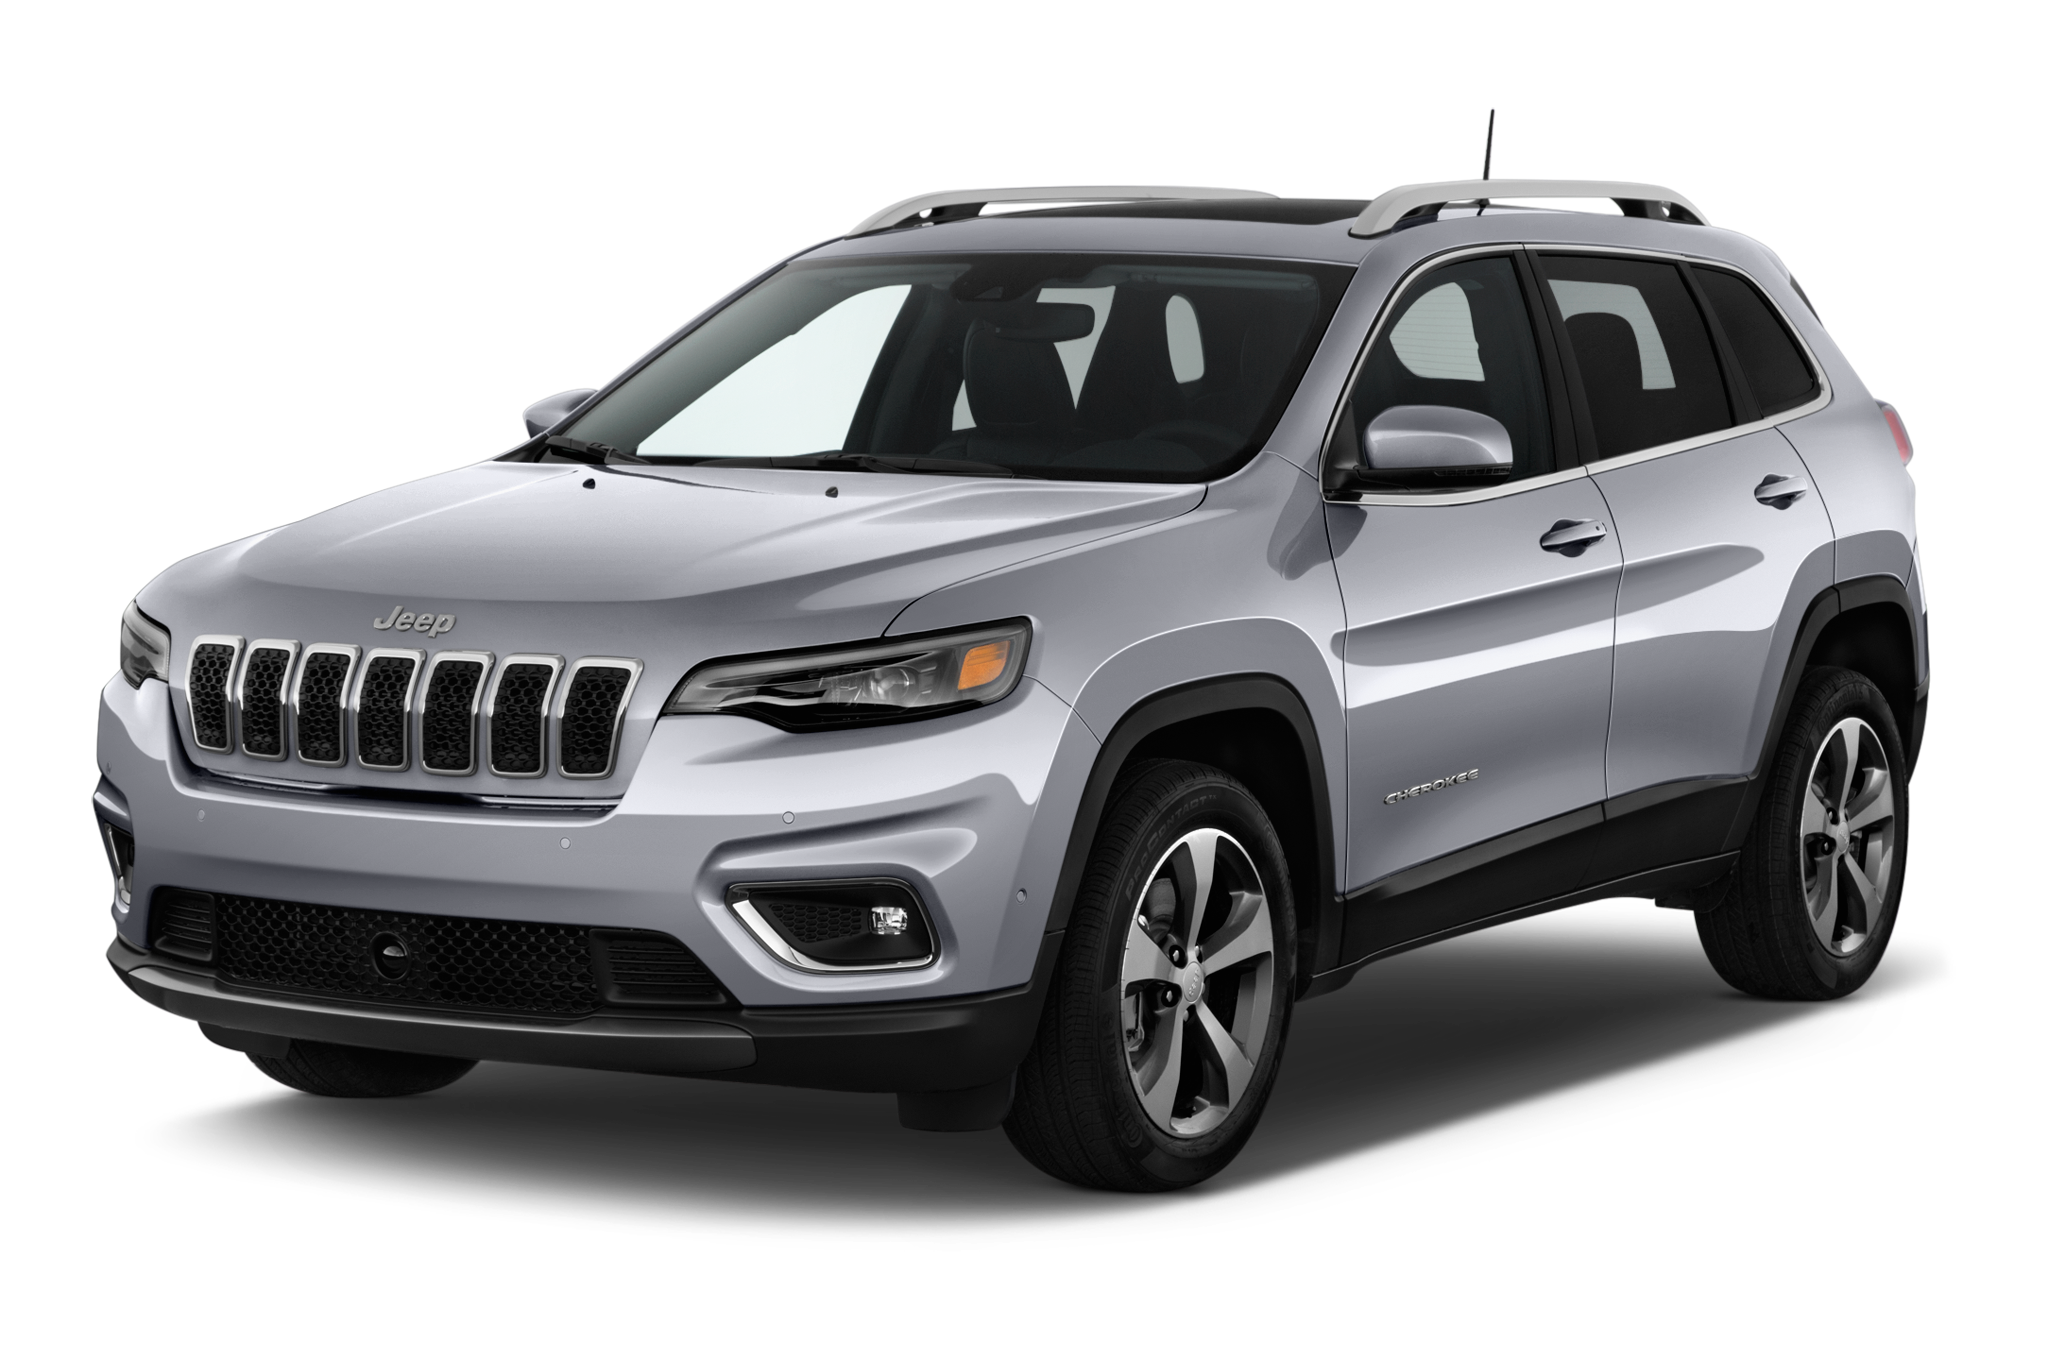 2019 jeep cherokee overland 4x4 one week review automobile magazine. Black Bedroom Furniture Sets. Home Design Ideas